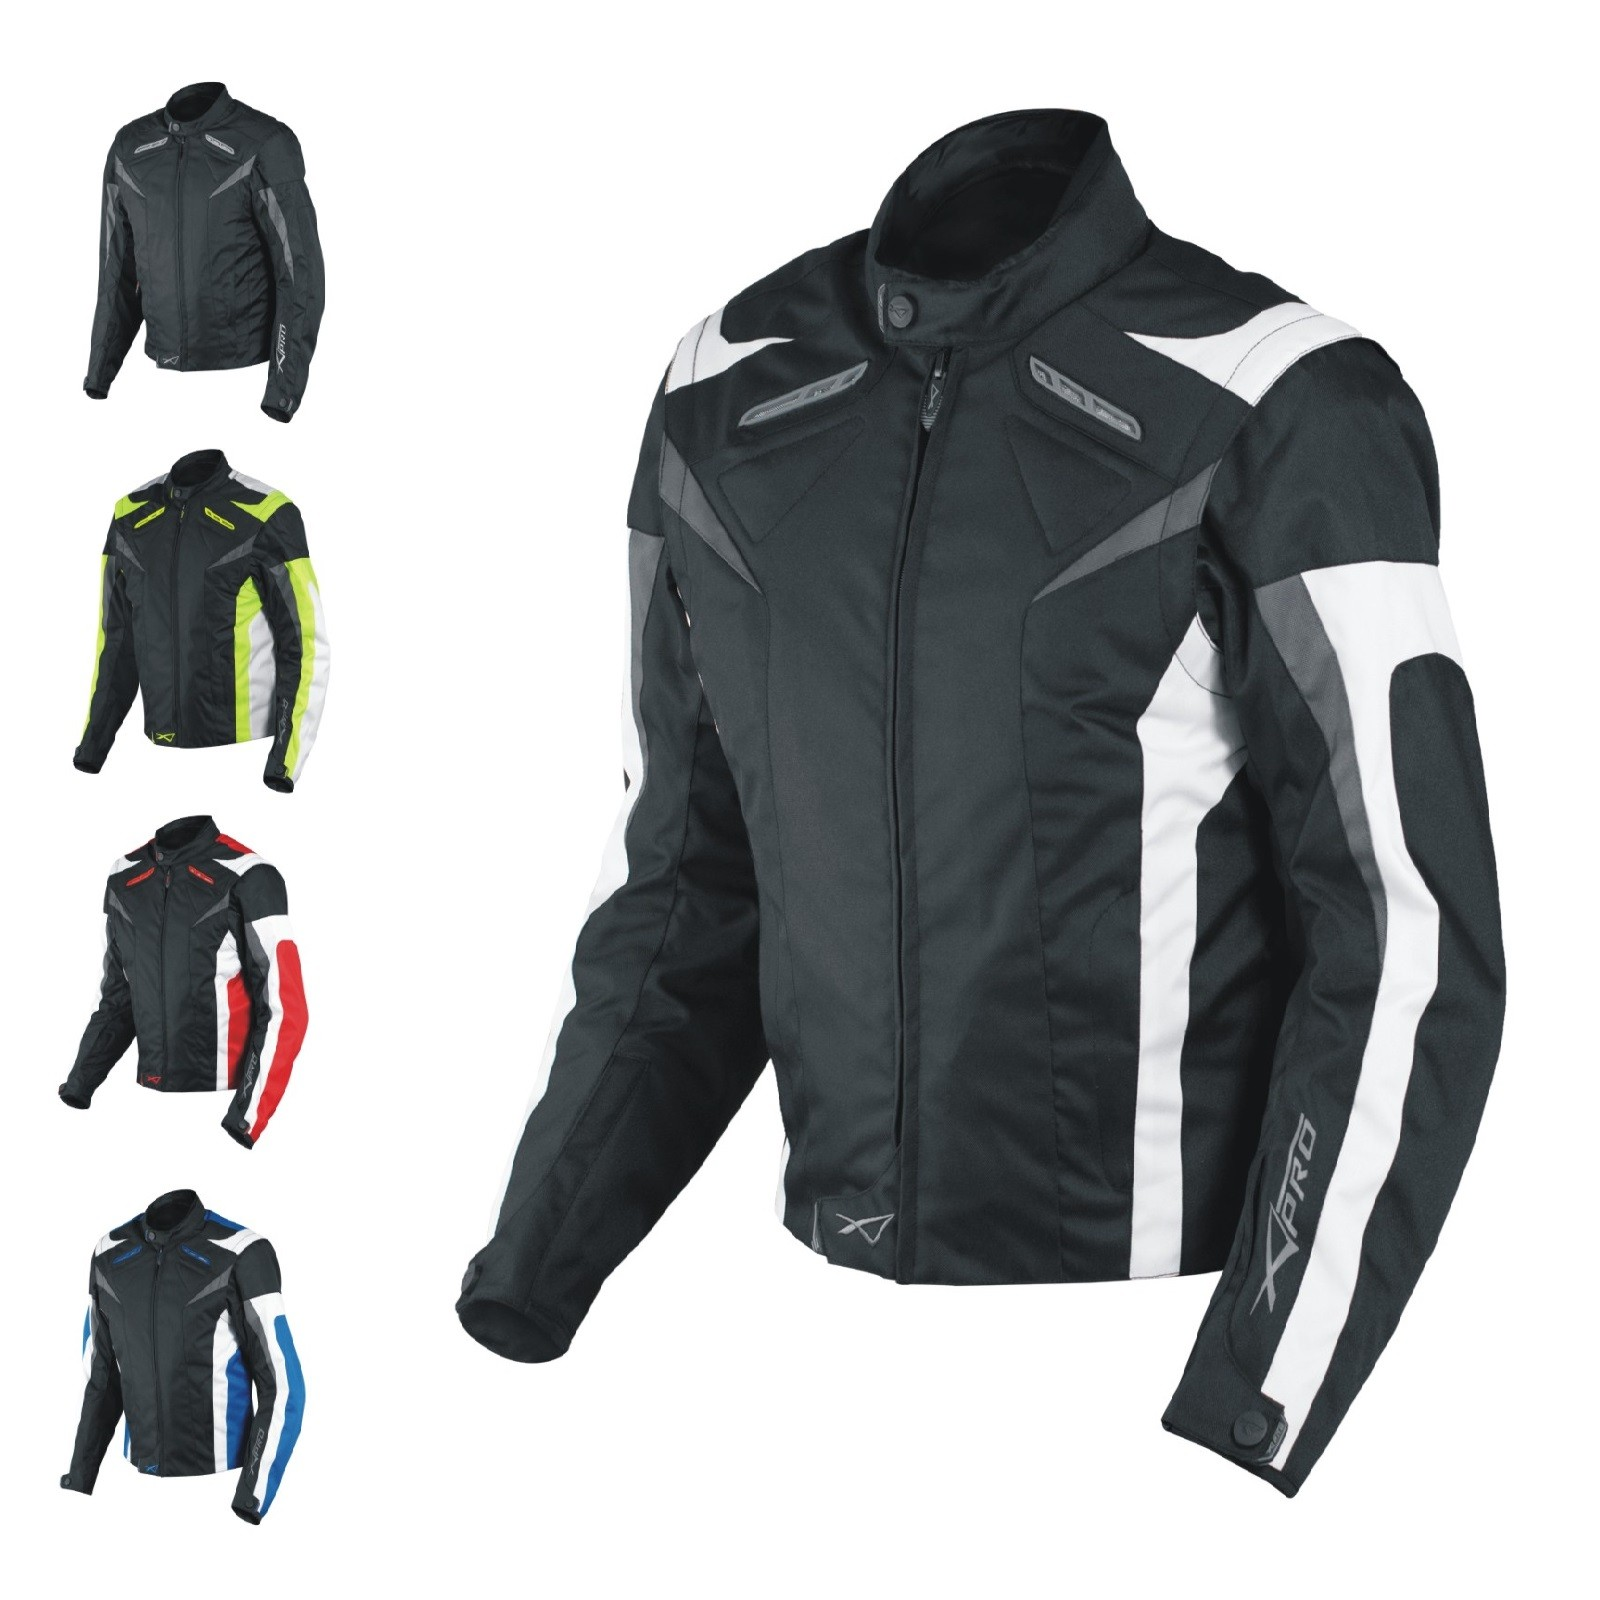 Hart-Lady_Donna-A-Pro-Giacca-Jacket-Moto-Motorcycle-Sonic-Moto